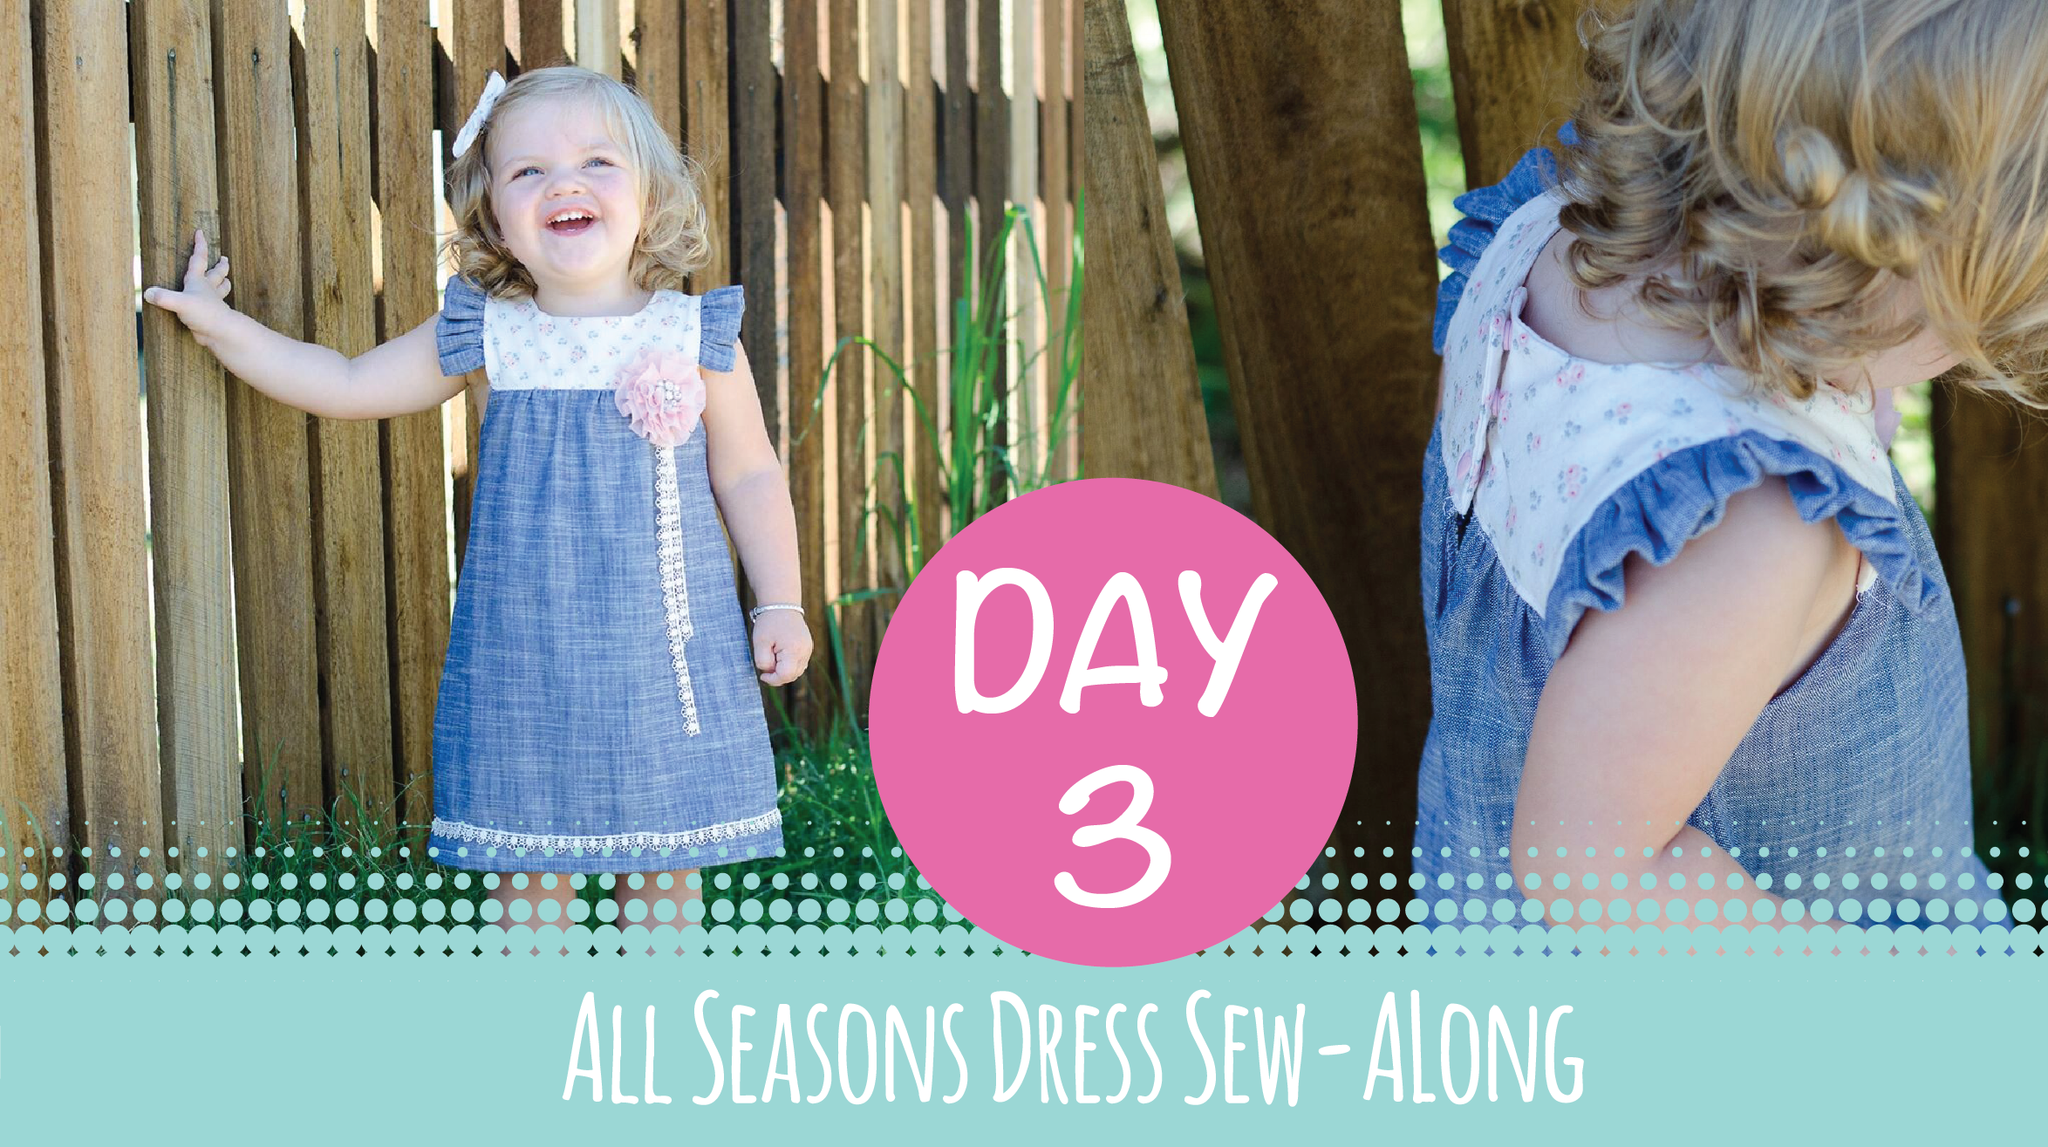 Sew Along - All Seasons Dress - Day 3